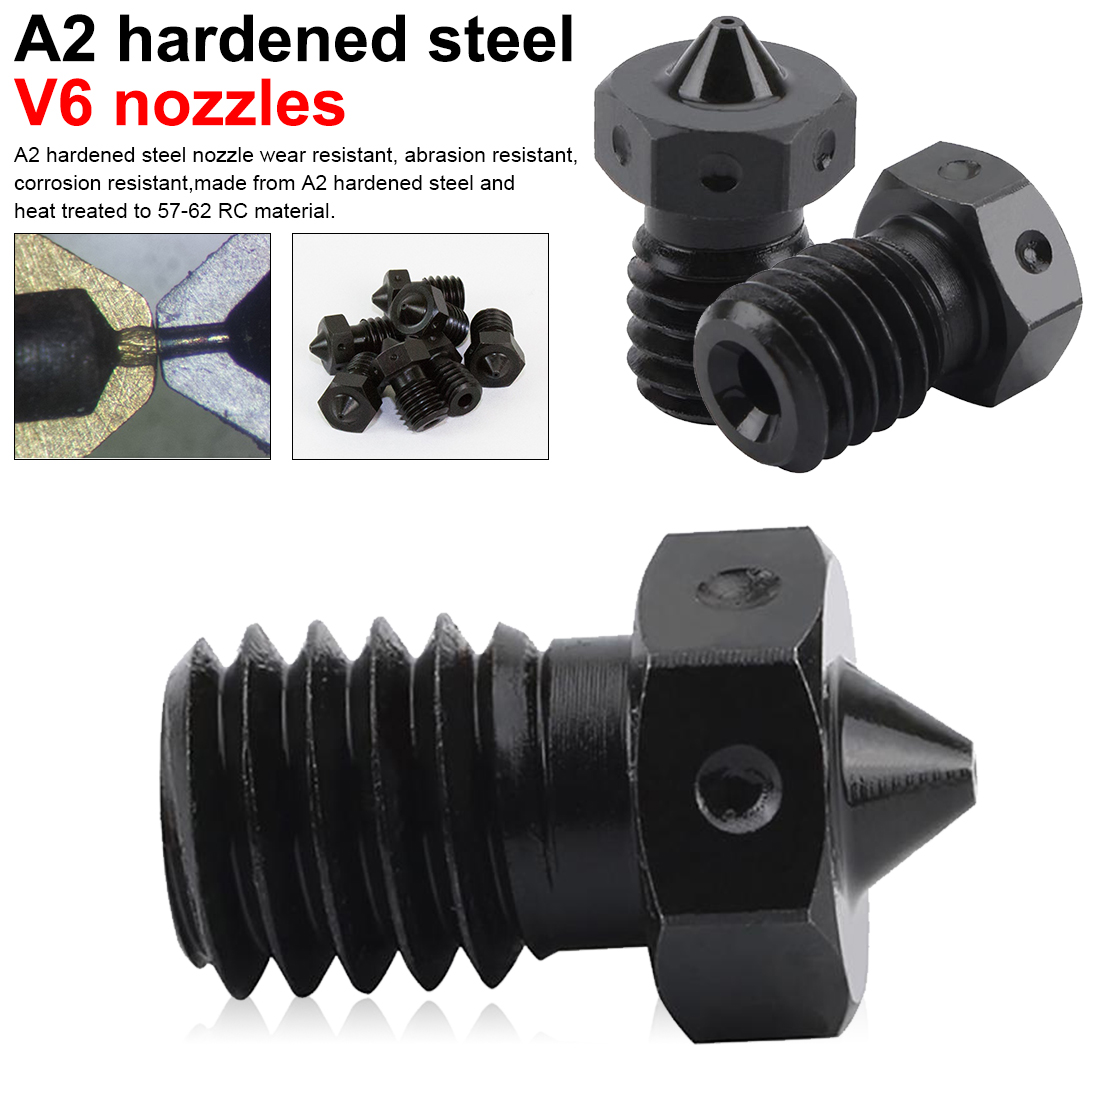 3D Printer Parts A2 Hardened Steel V6 Nozzles for Printing PEI PEEK or Carbon Fiber Filament 10